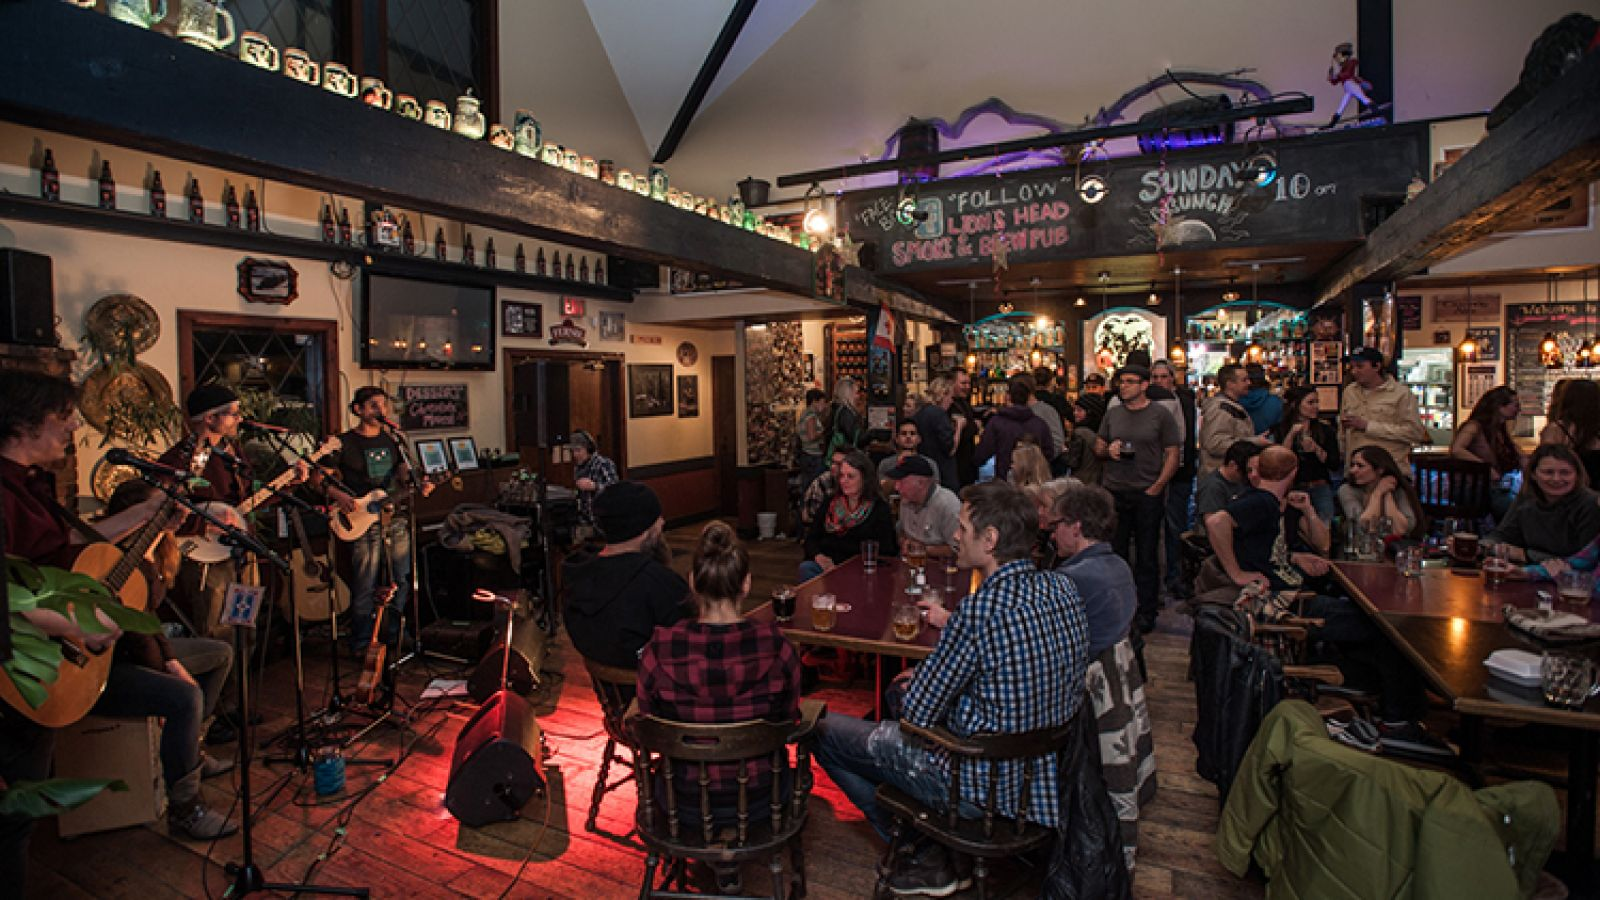 Great food with special events.